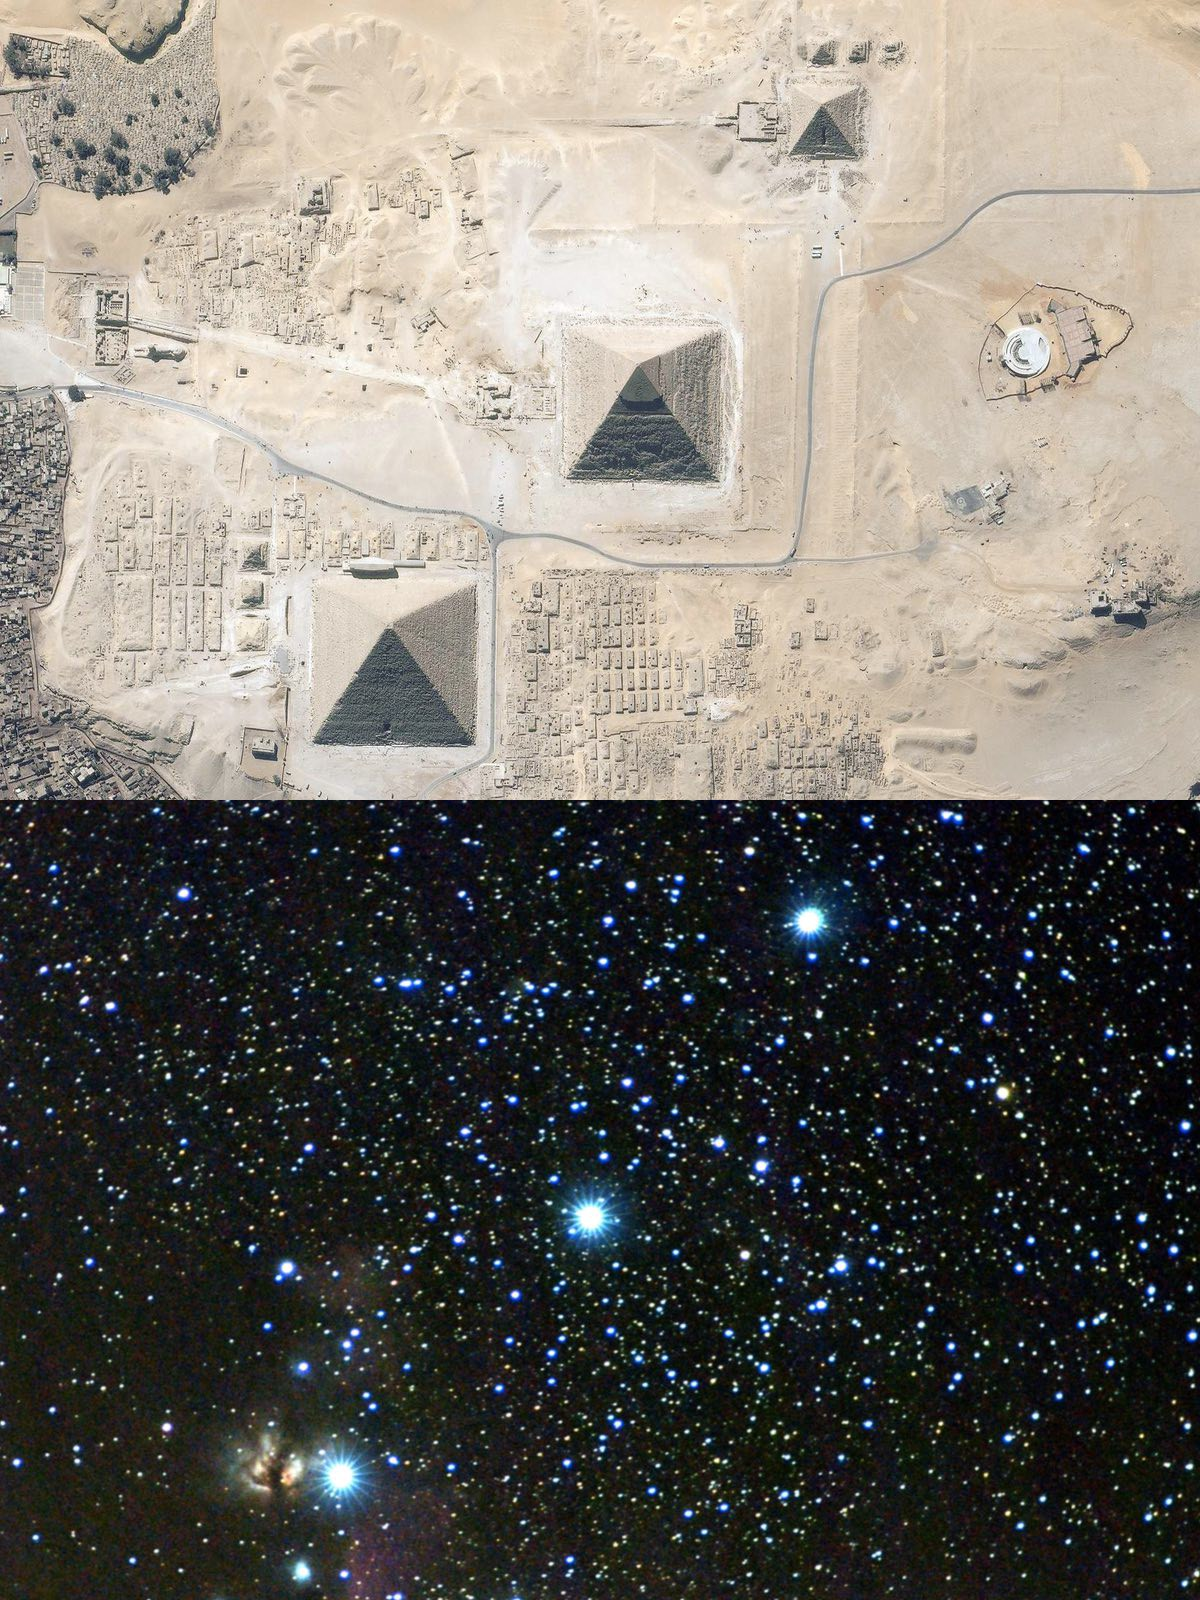 The 3 Pyramids of Giza match almost exactly the 3 stars of Orions Belt.